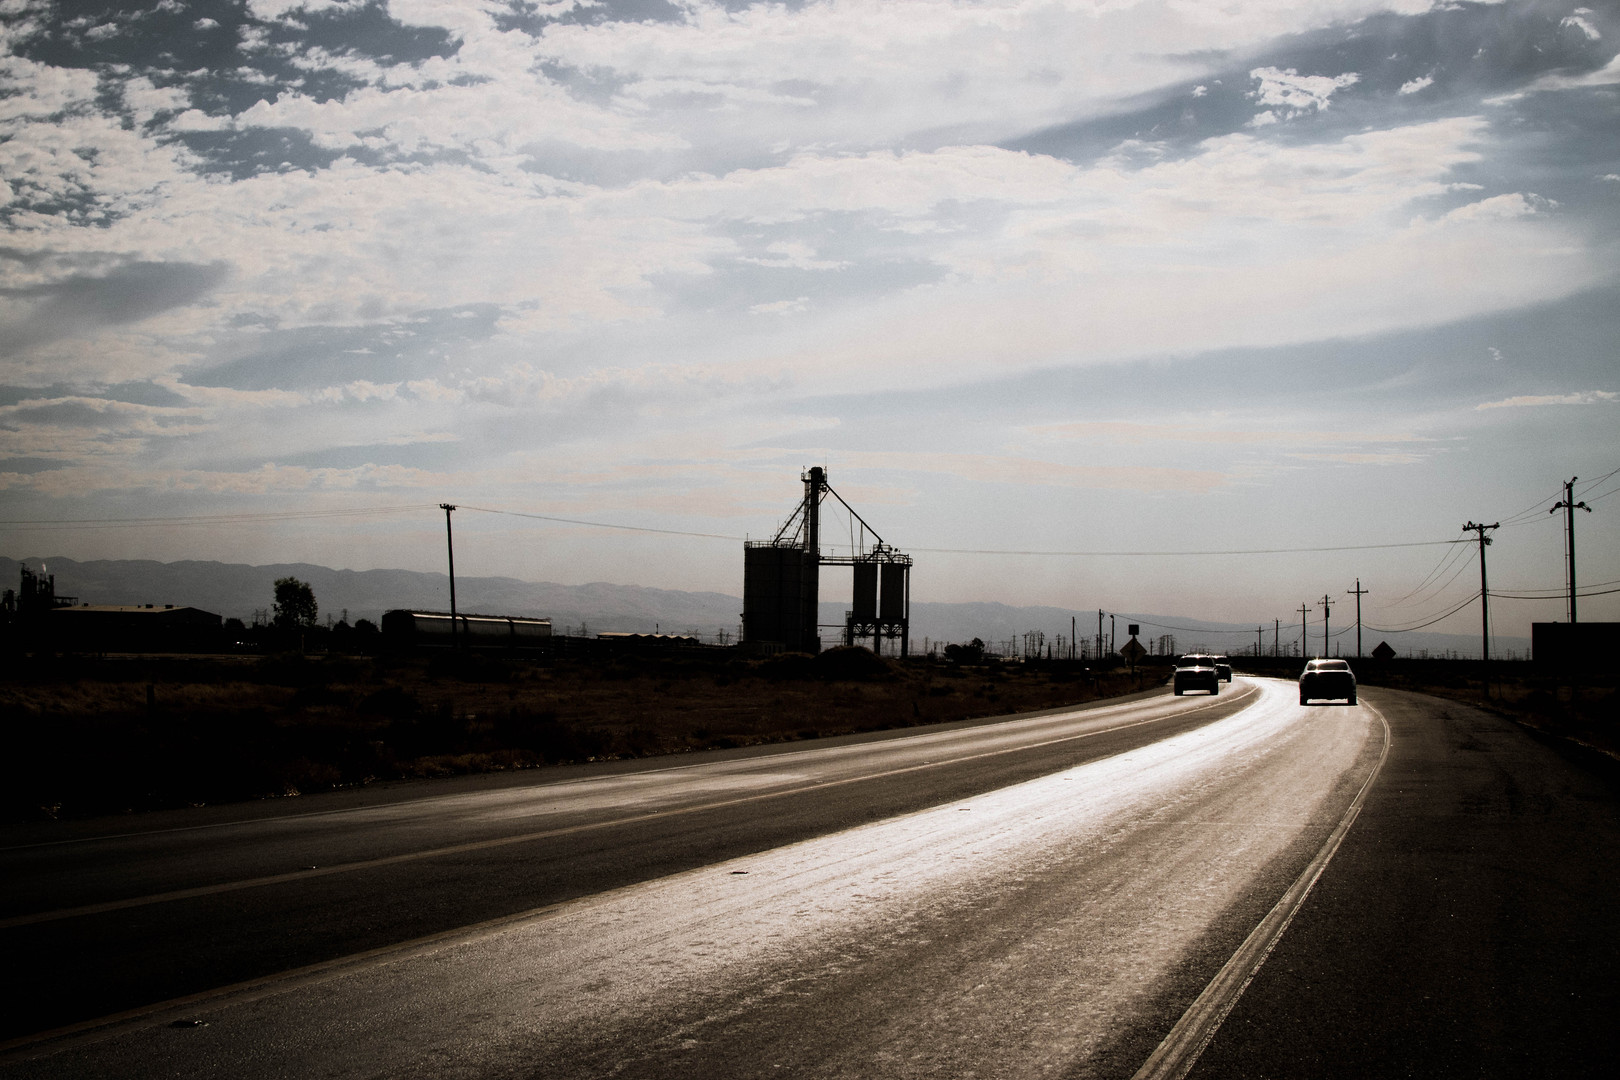 EXT. Towards Buttonwillow Towers